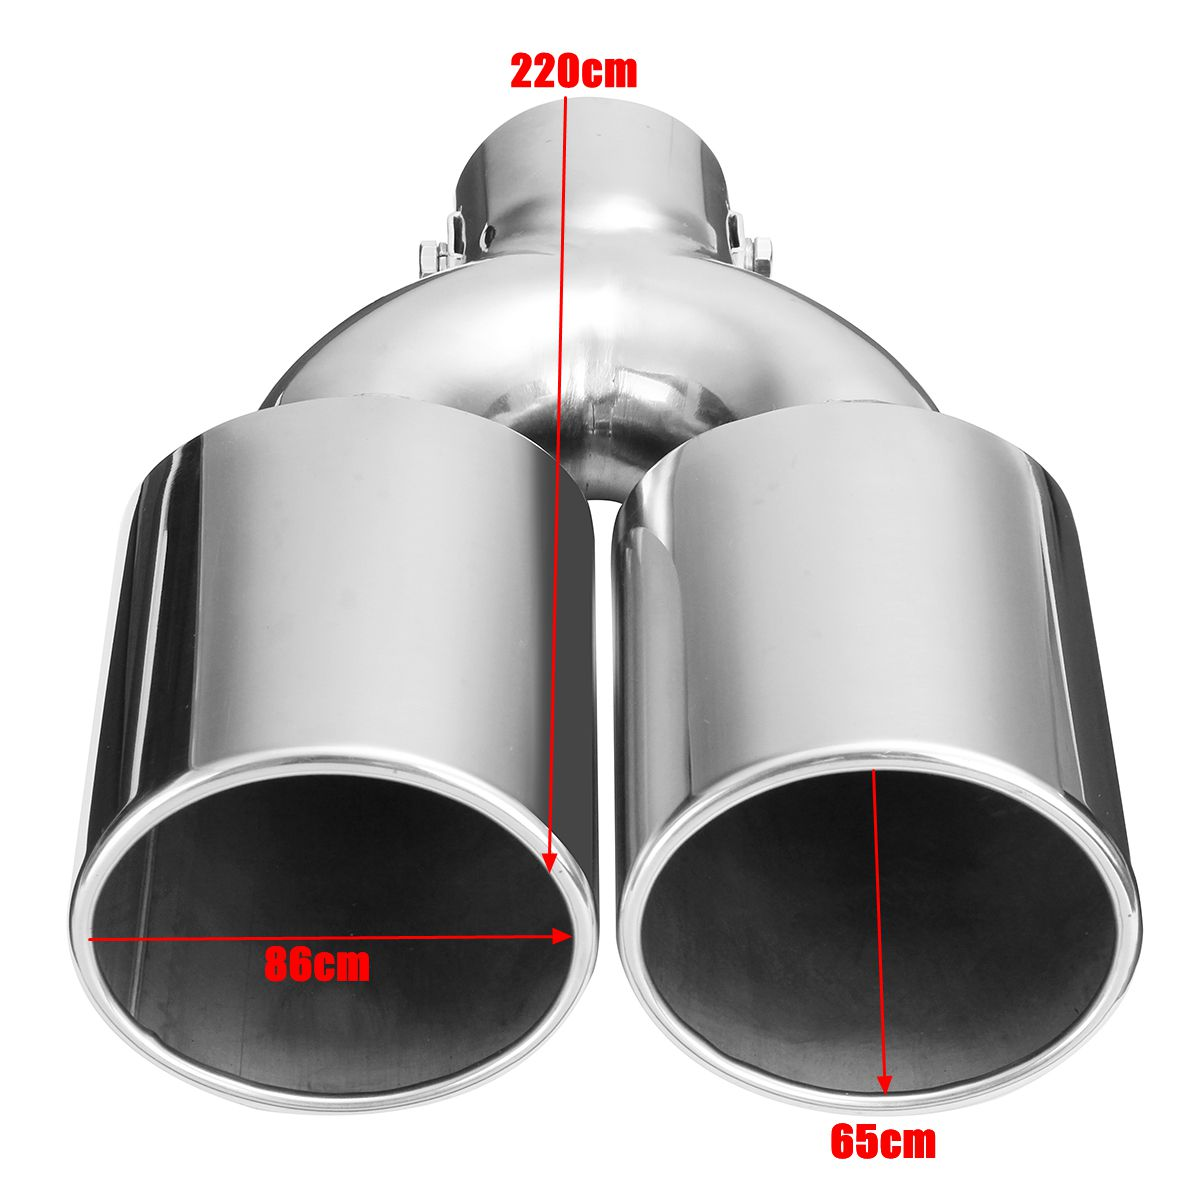 Universal 60mm Double Outlet Stainless Steel Chrome Car Muffler Exhaust Pipe Tip End Trim Modified Tail Throat Liner Pipe Silver image